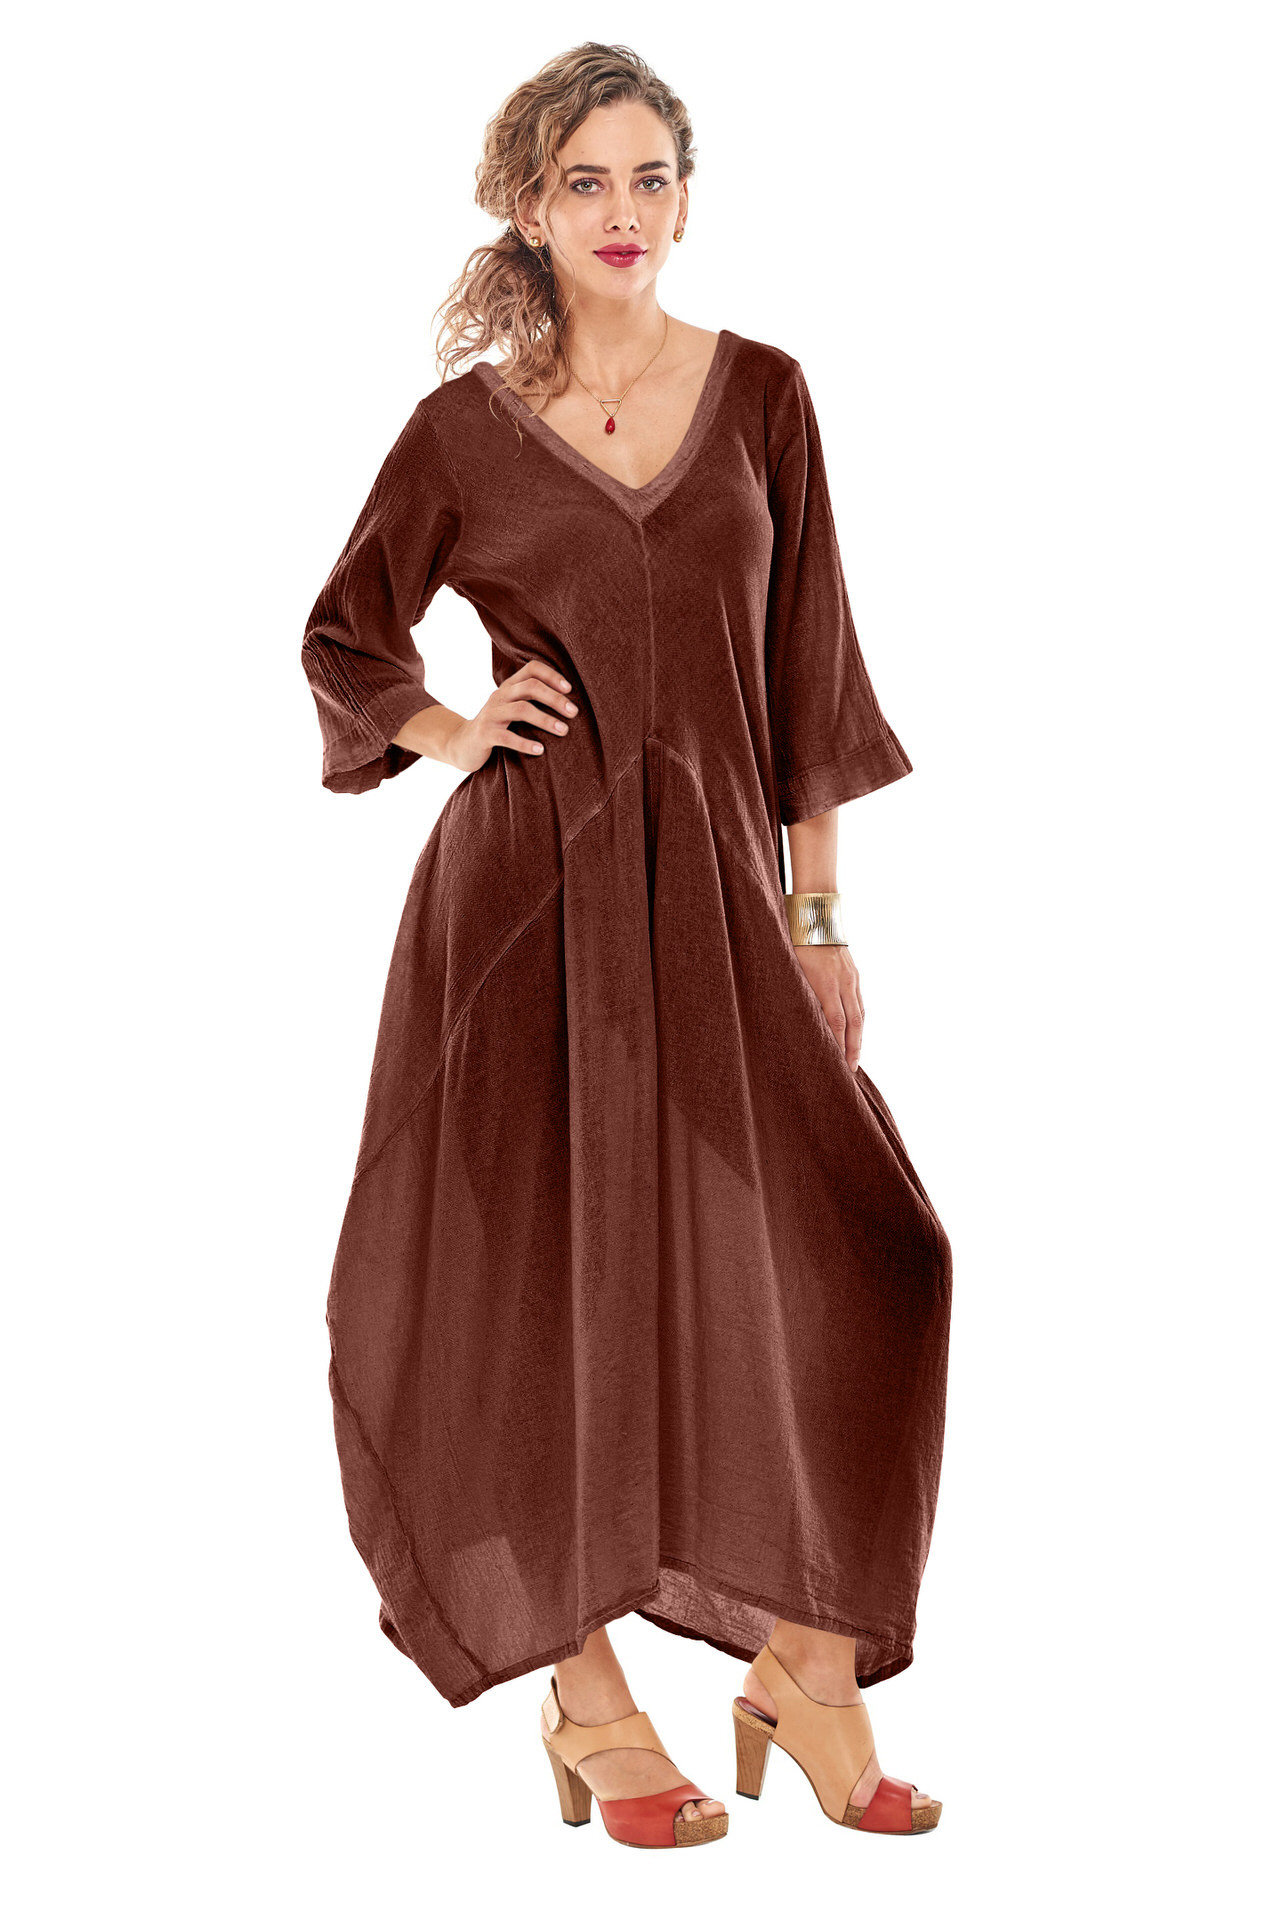 OMG - A long V-neck cotton gauze dress, three quarter length sleeve with a semi fitted empire waist. Super flattering and is our best selling dress.